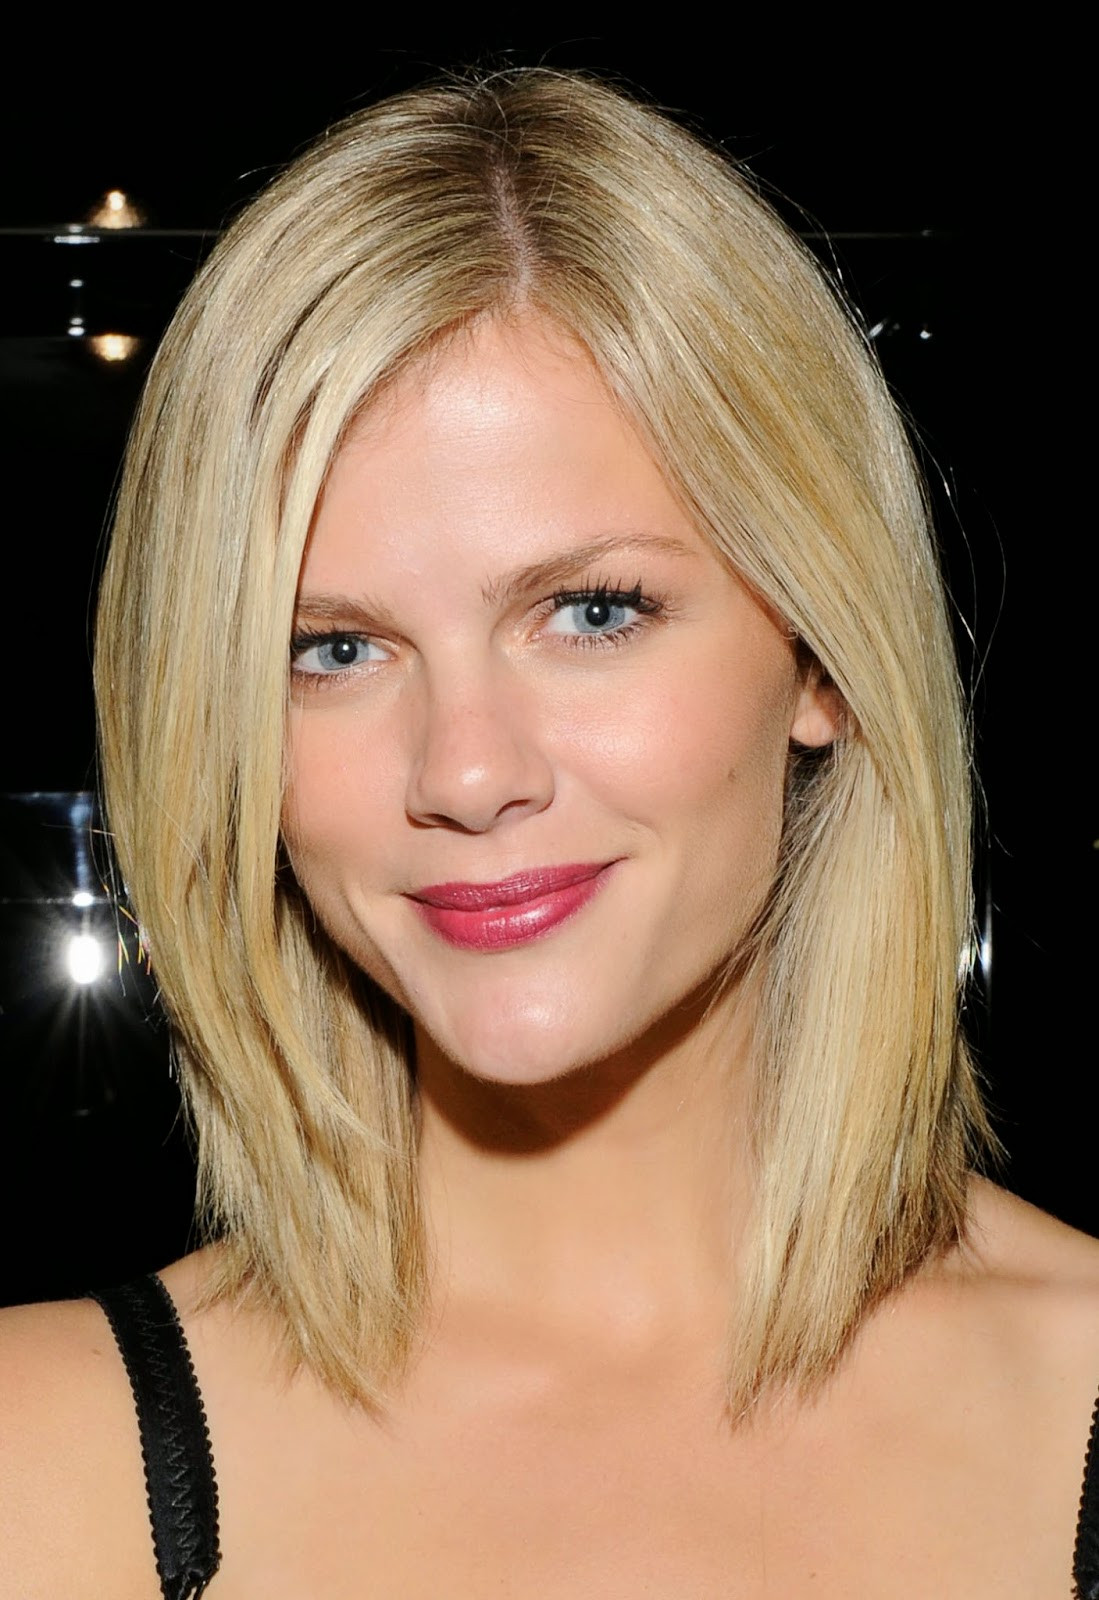 Best ideas about Hairstyles For Bob Cuts . Save or Pin Wedge Hairstyle 2014 Hairstyles For Women Now.